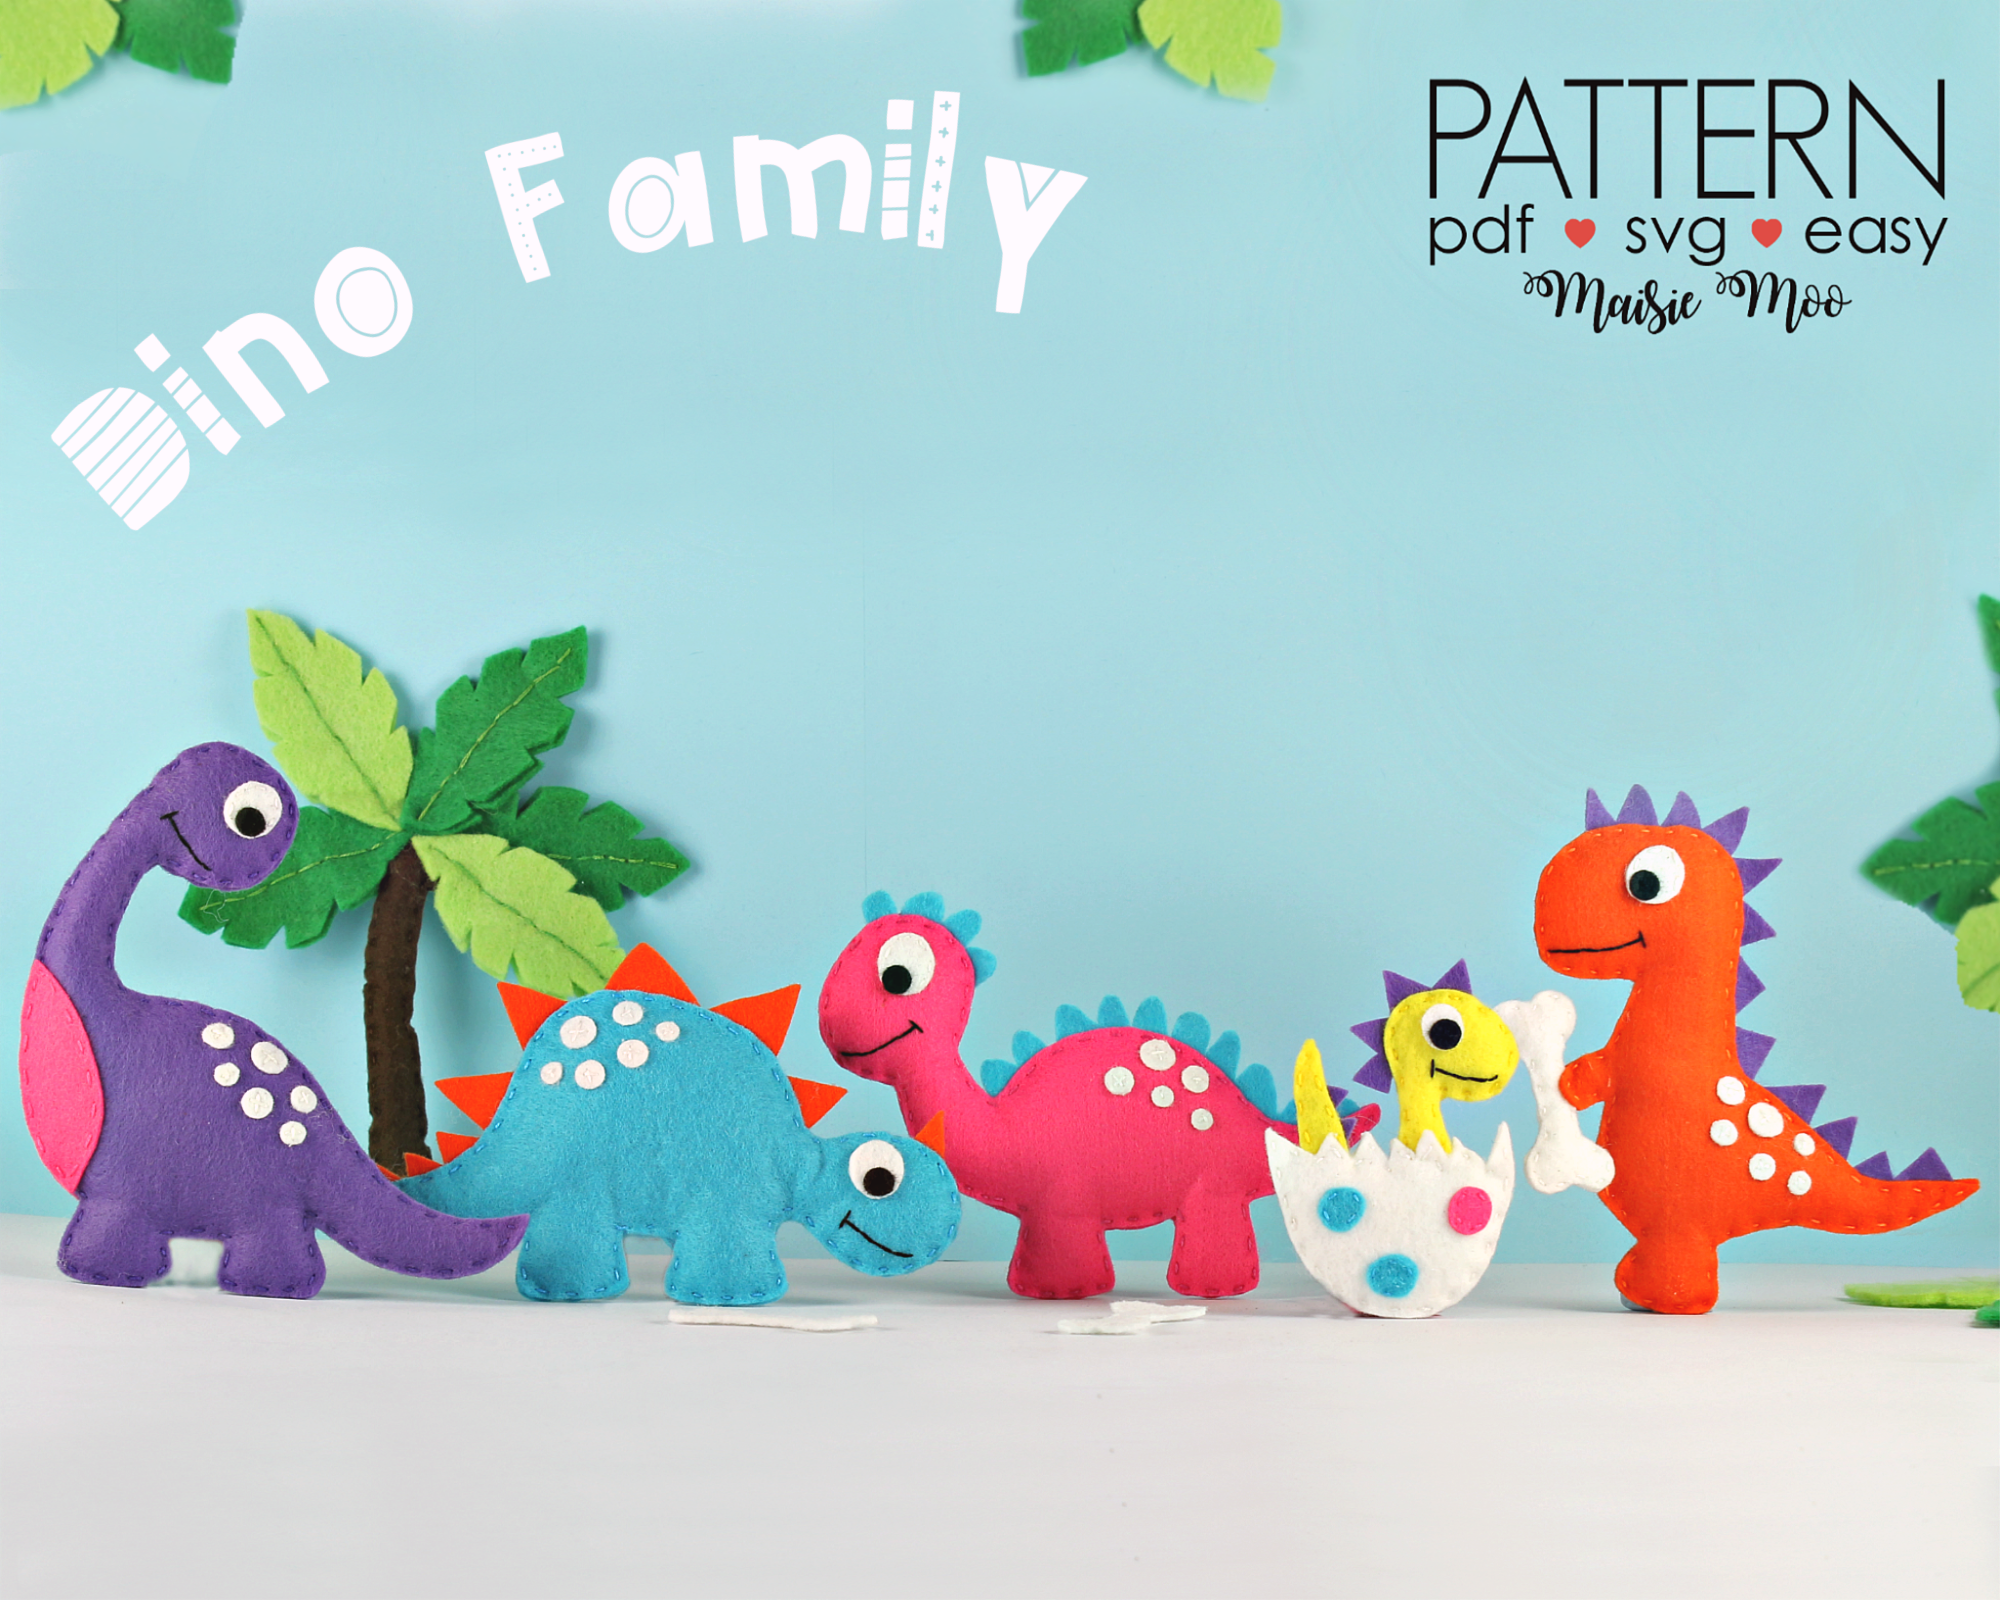 Felt Dinosaur Sewing Patterns | Dino Plush Pattern